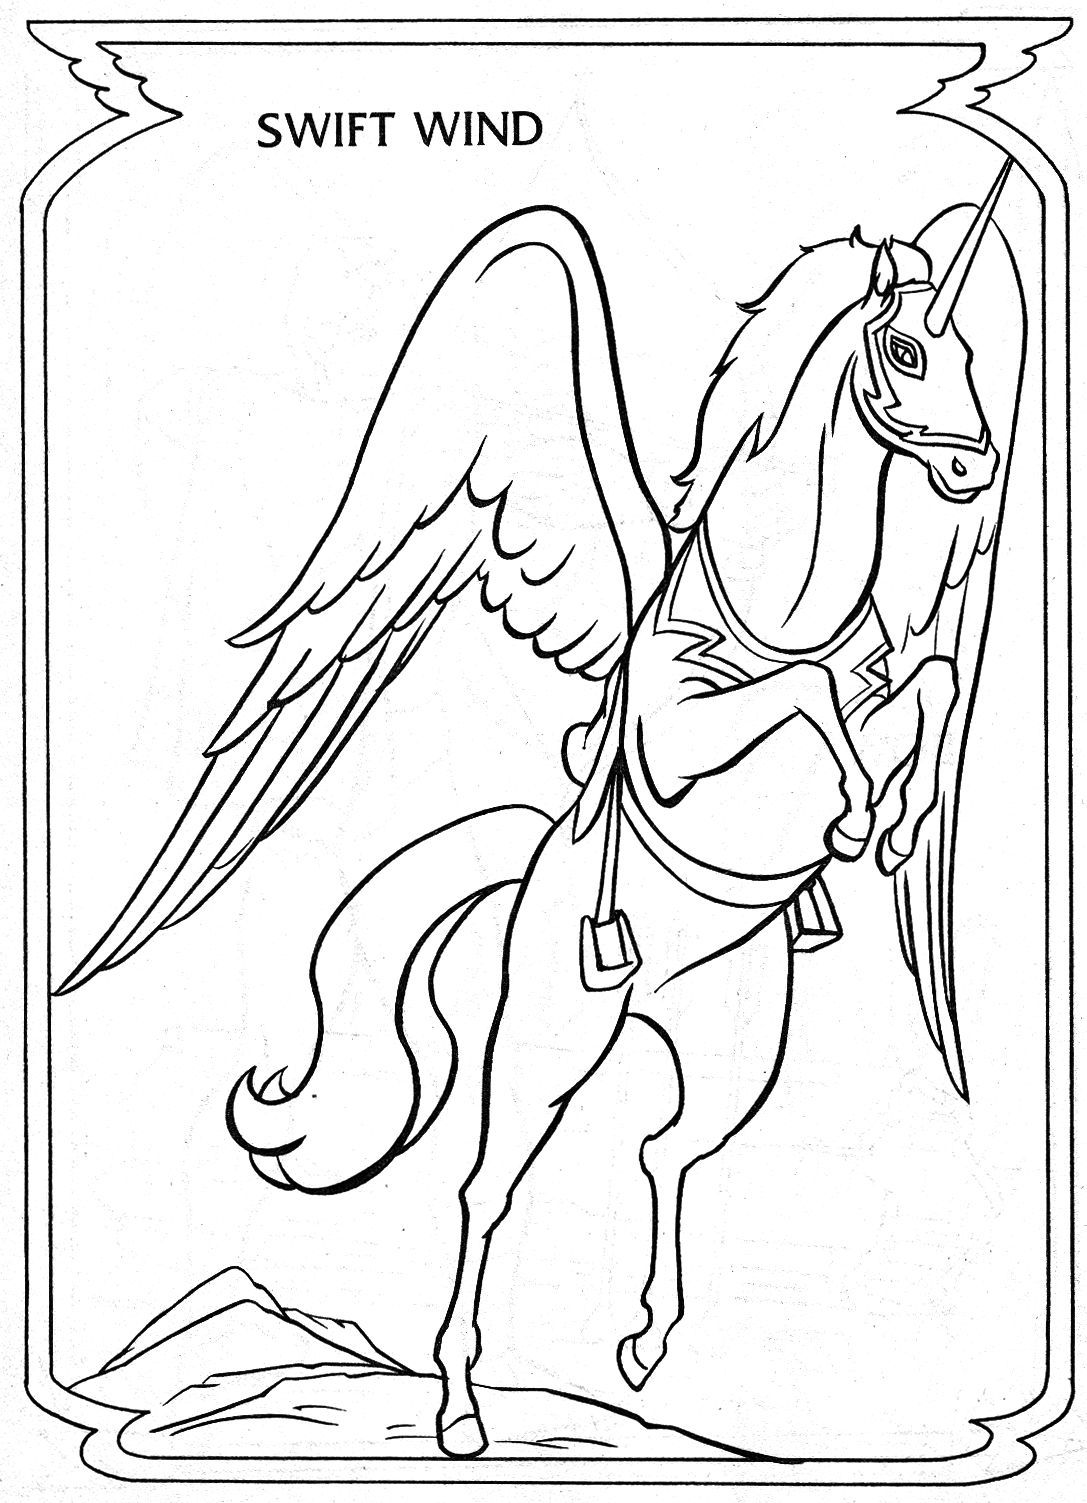 She Ra Mermista Coloring Pages Coloring Pages